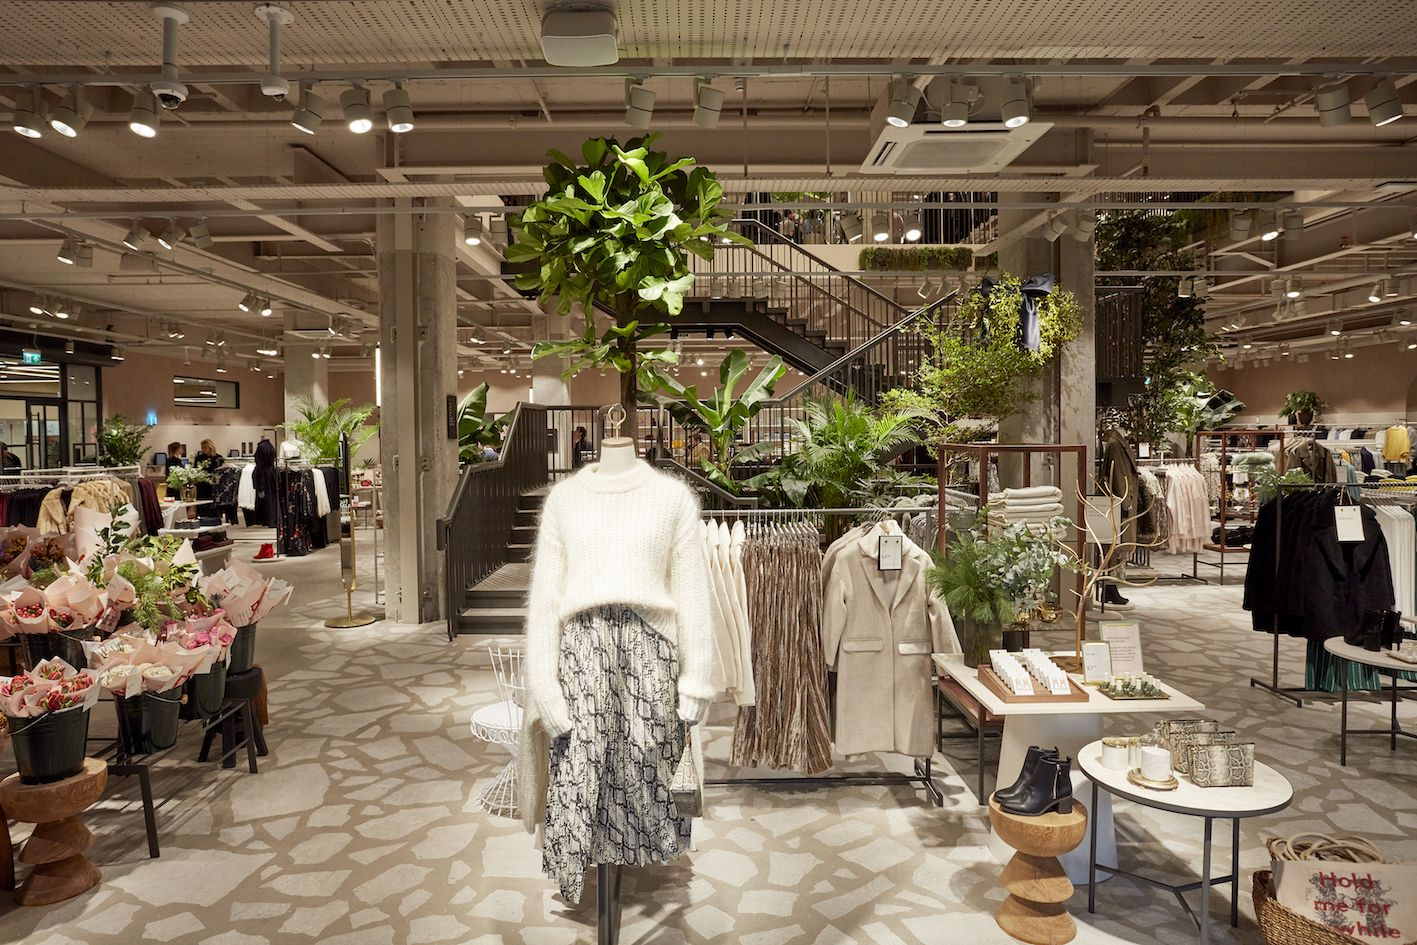 H&M Rings the Changes in Hammersmith Retail concepts